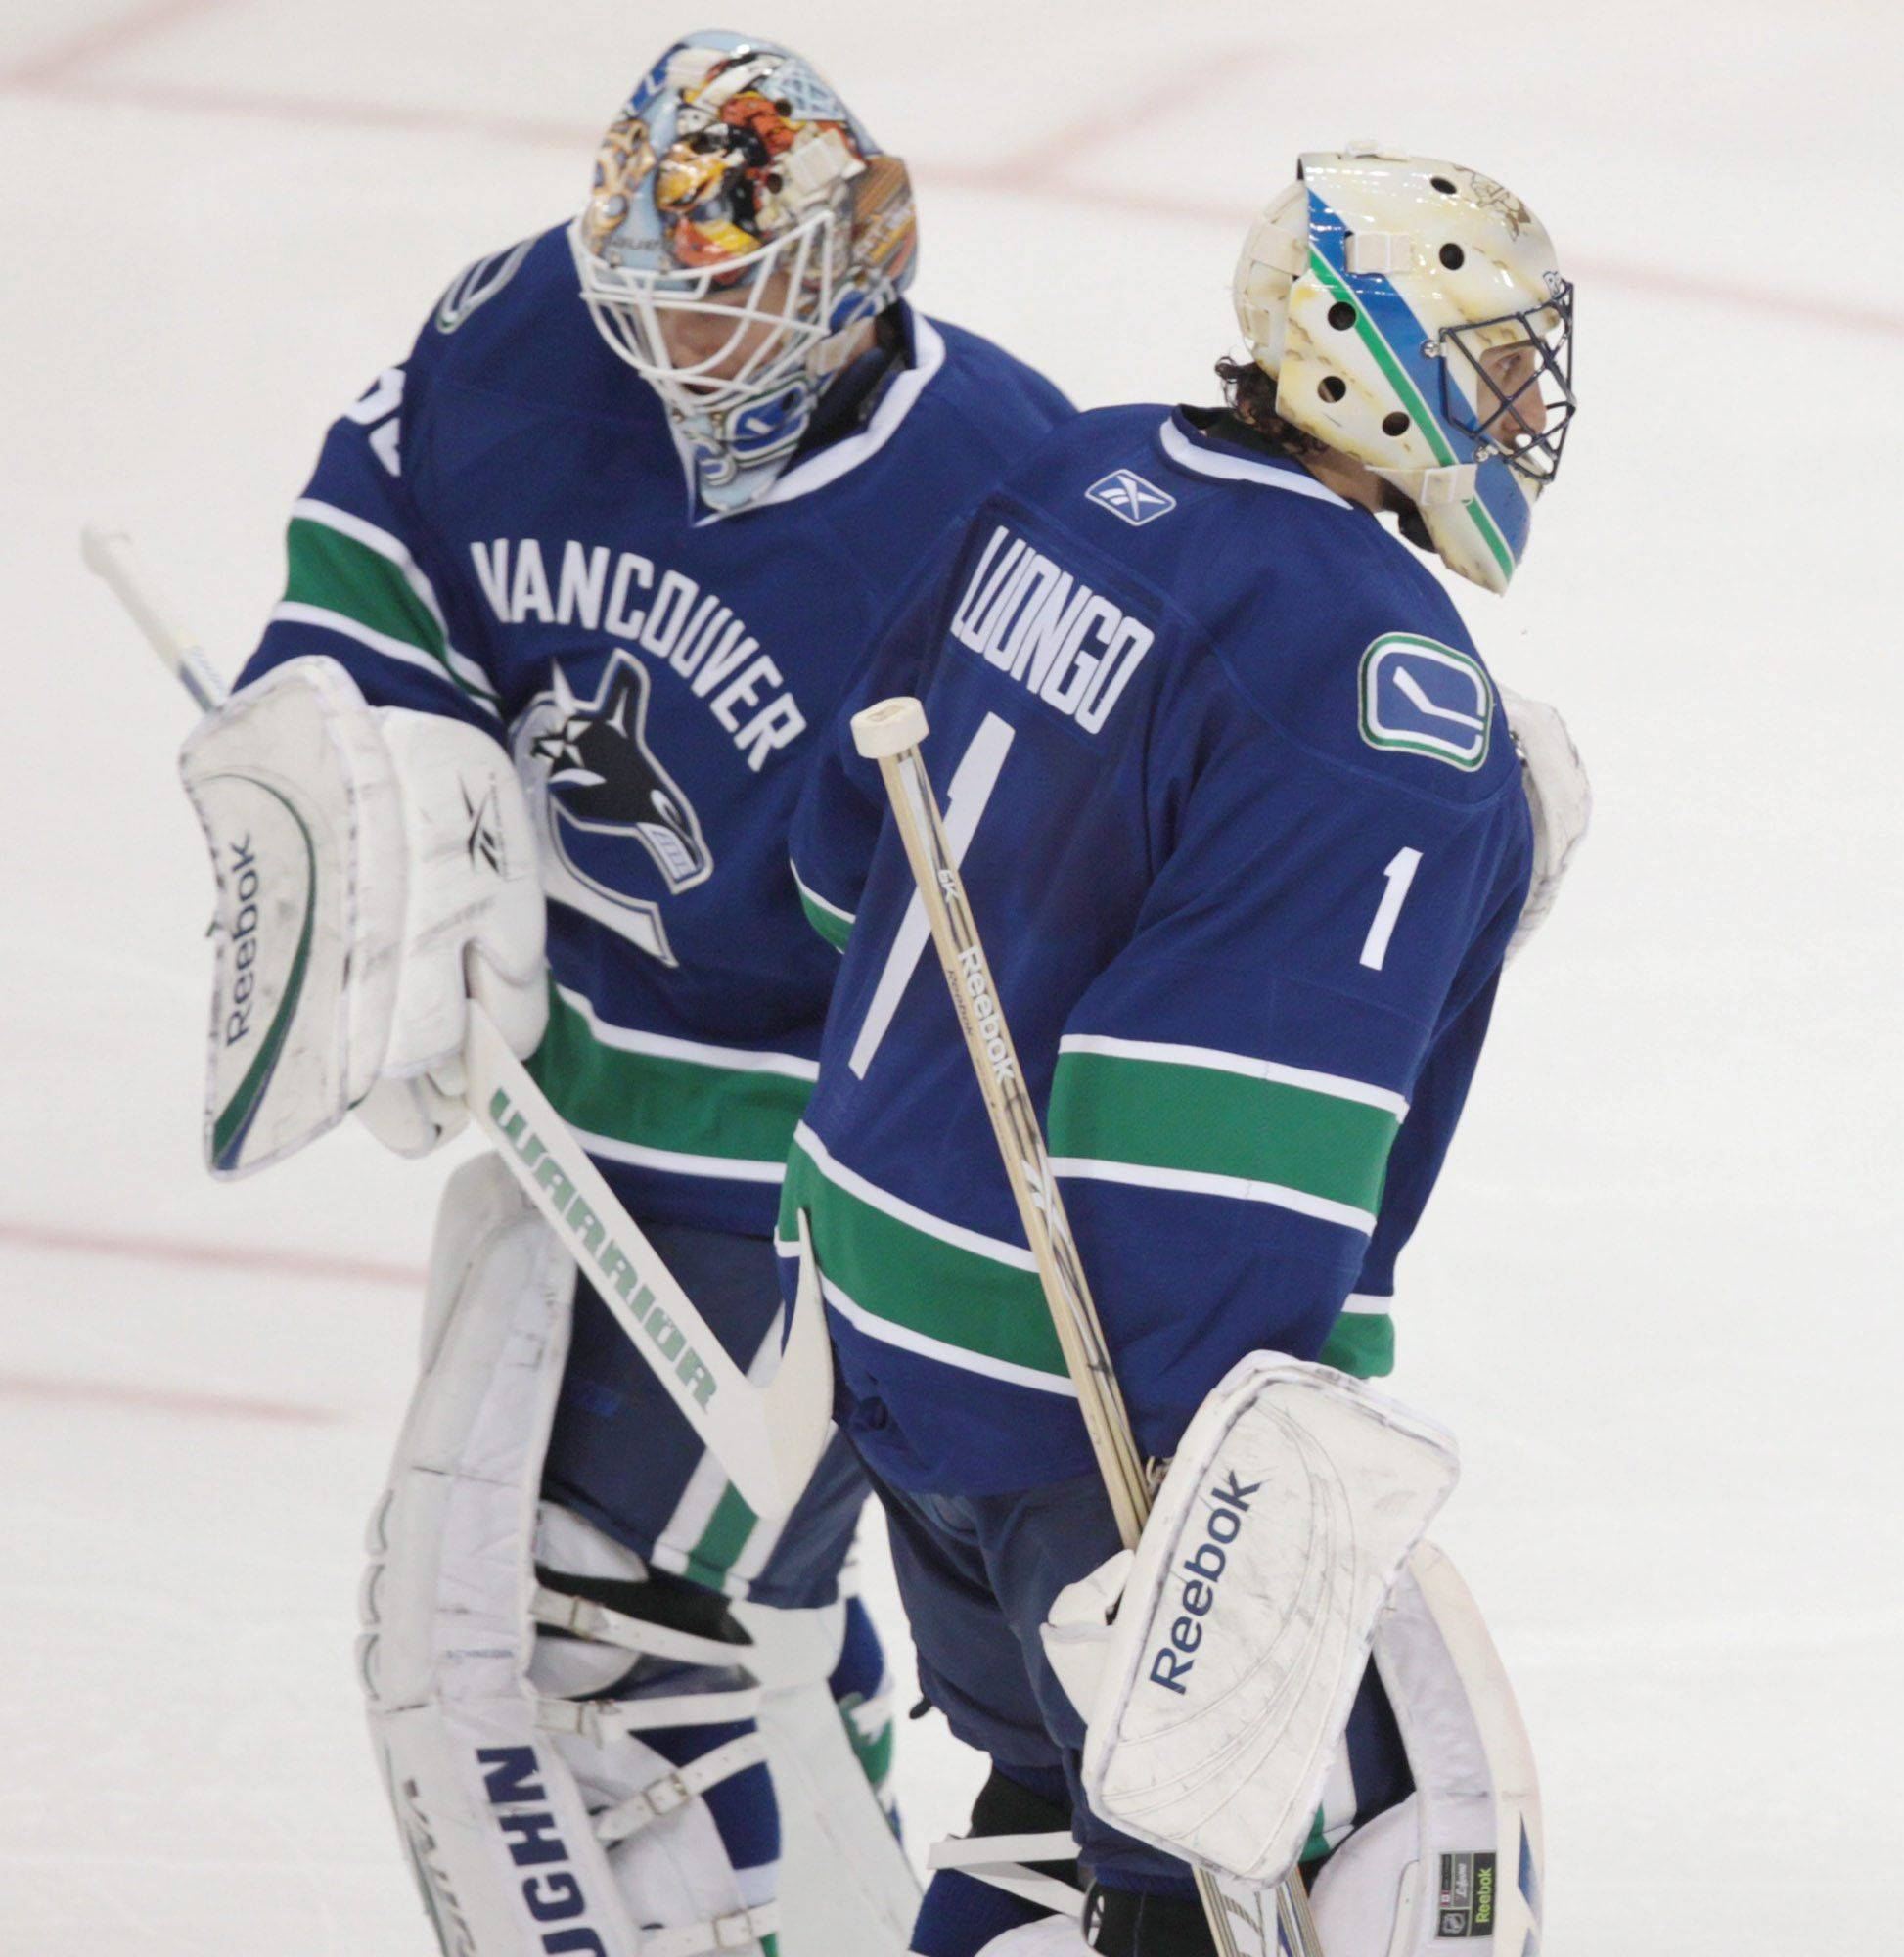 Vancouver Canucks' Roberto Luongo, right, leaves the ice and is replaced by Cory Schneider, left.